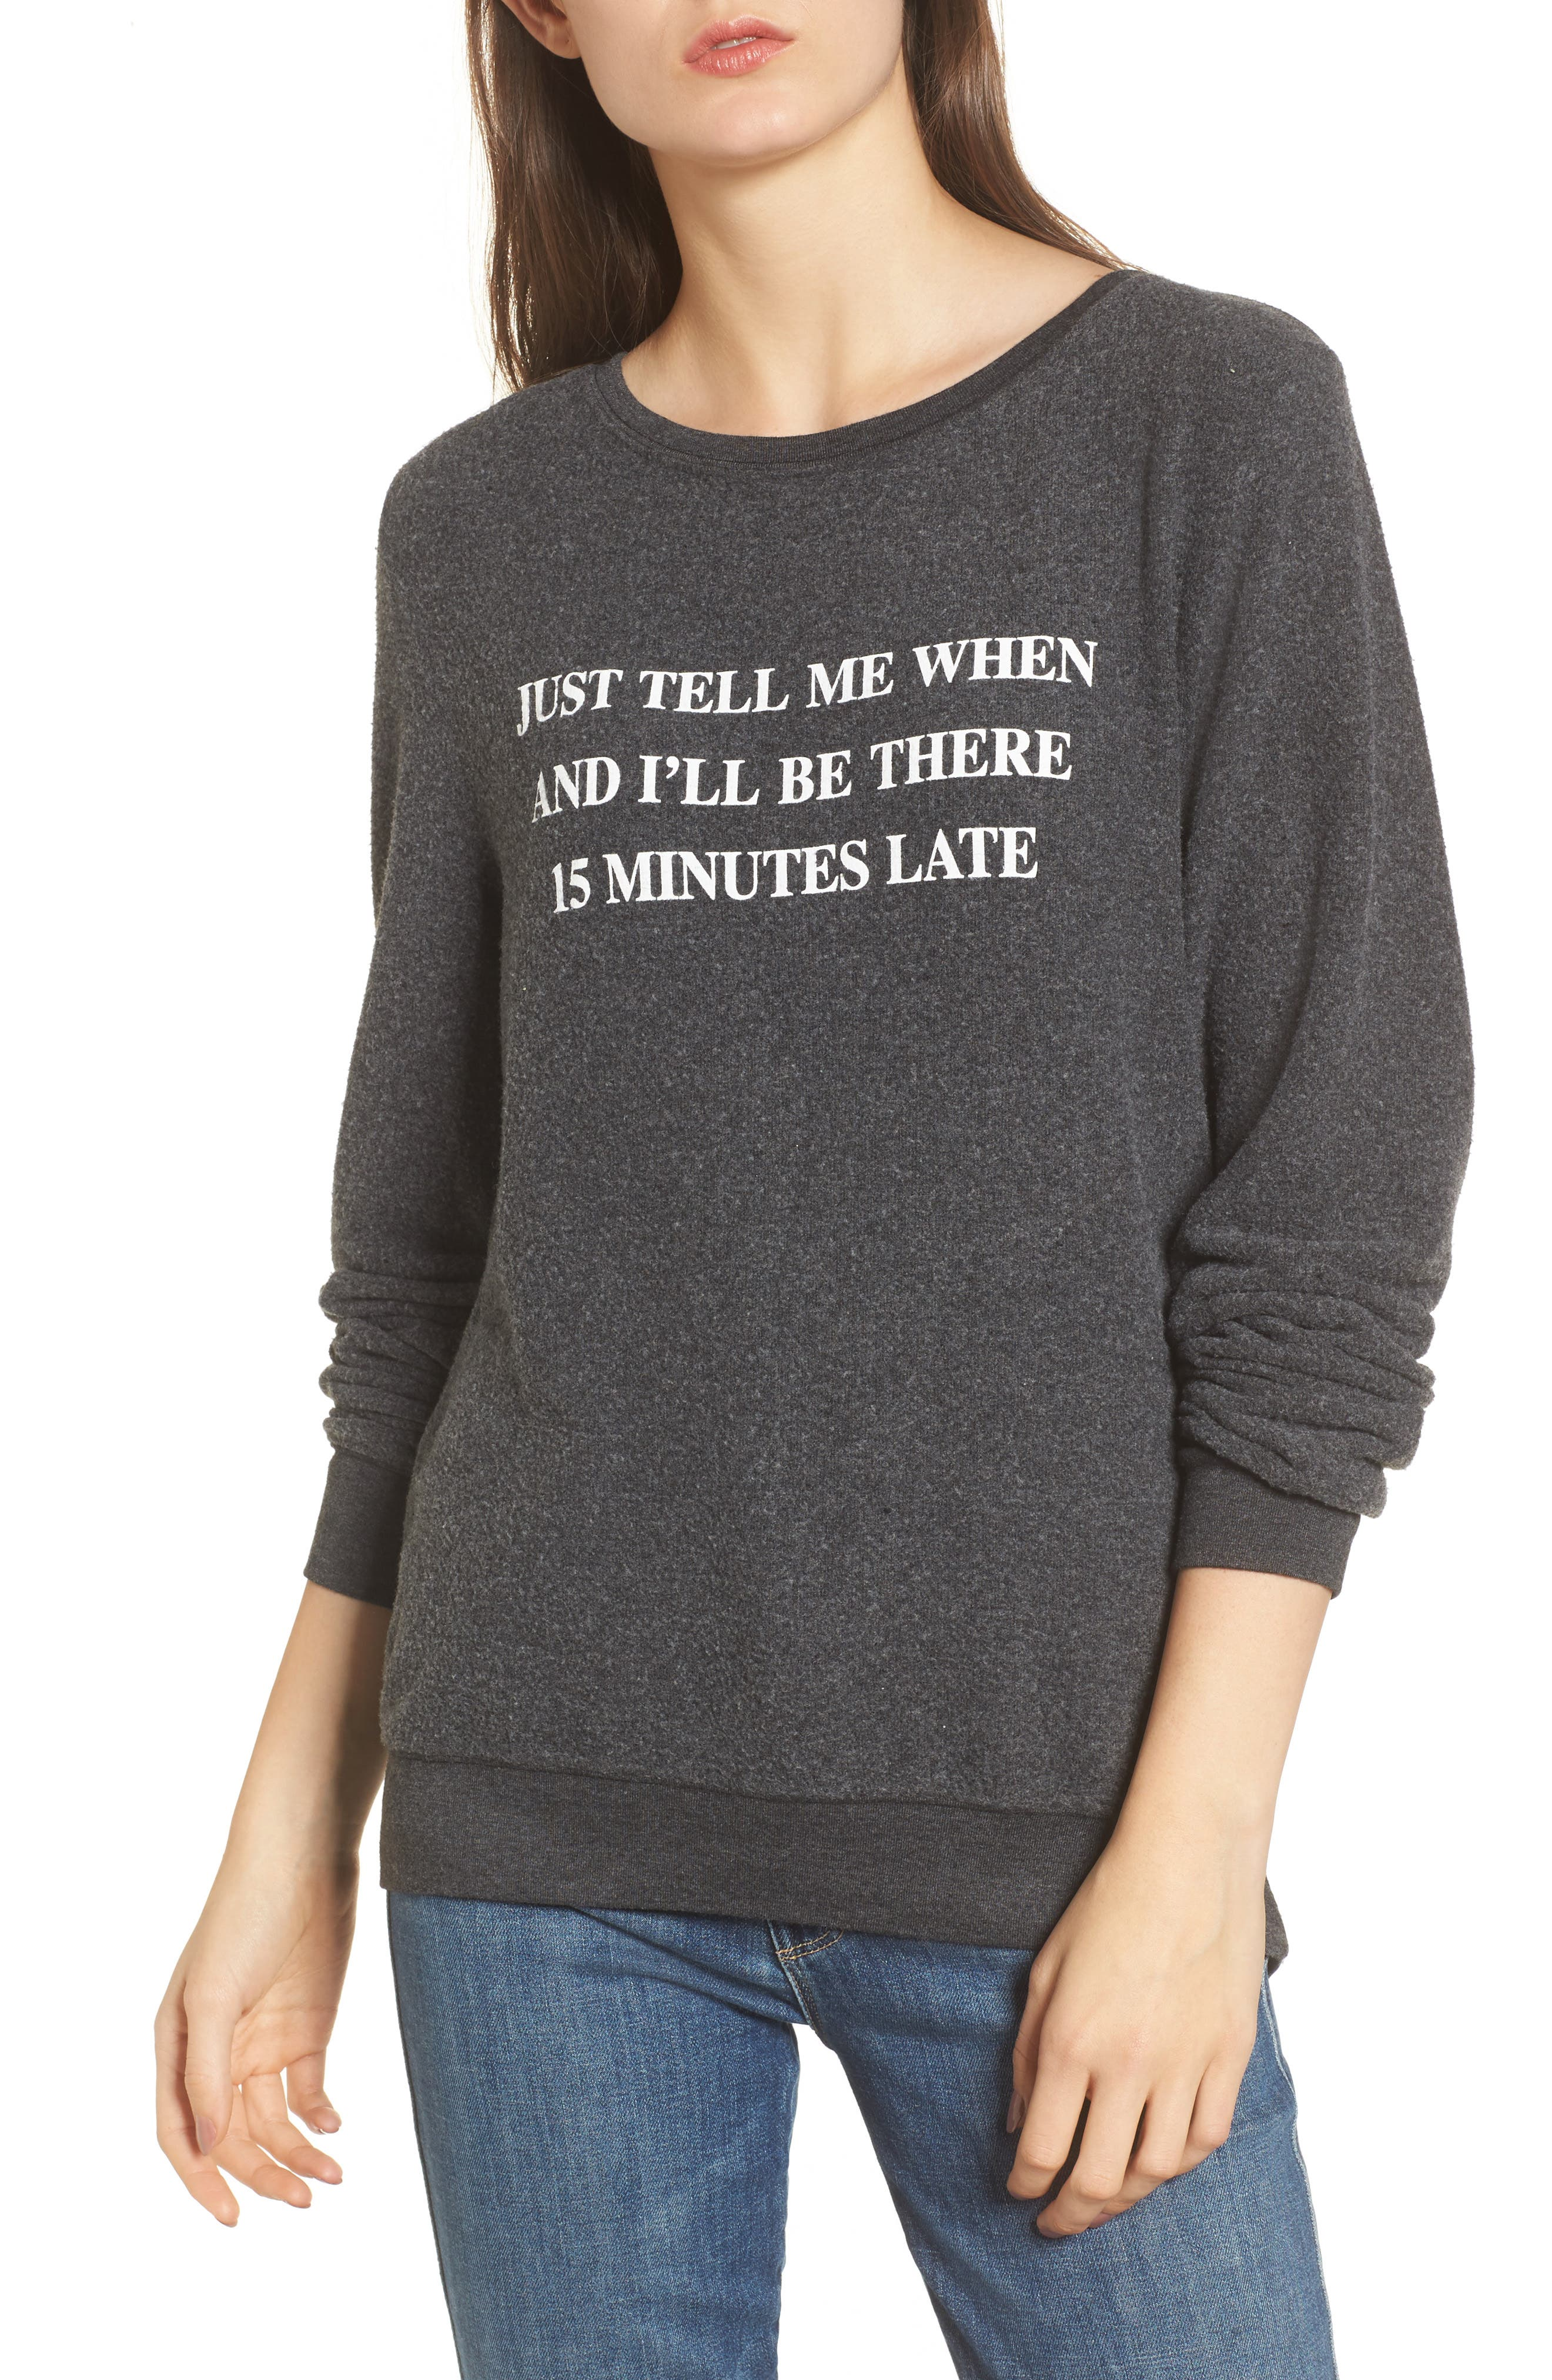 Just Tell Me When Sweatshirt,                             Main thumbnail 1, color,                             Black